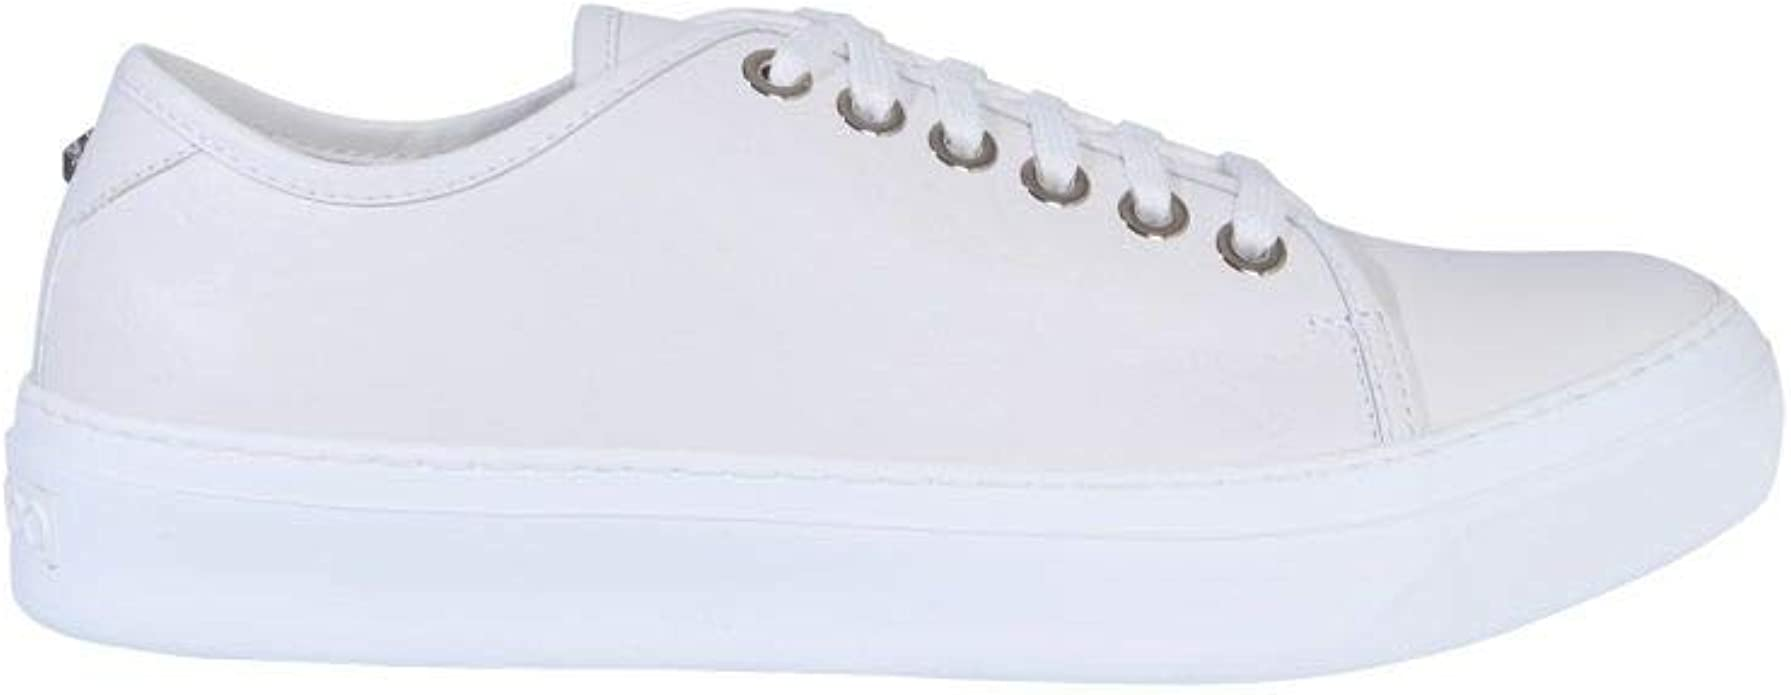 JIMMY CHOO Luxury Fashion Mens Sneakers Summer White